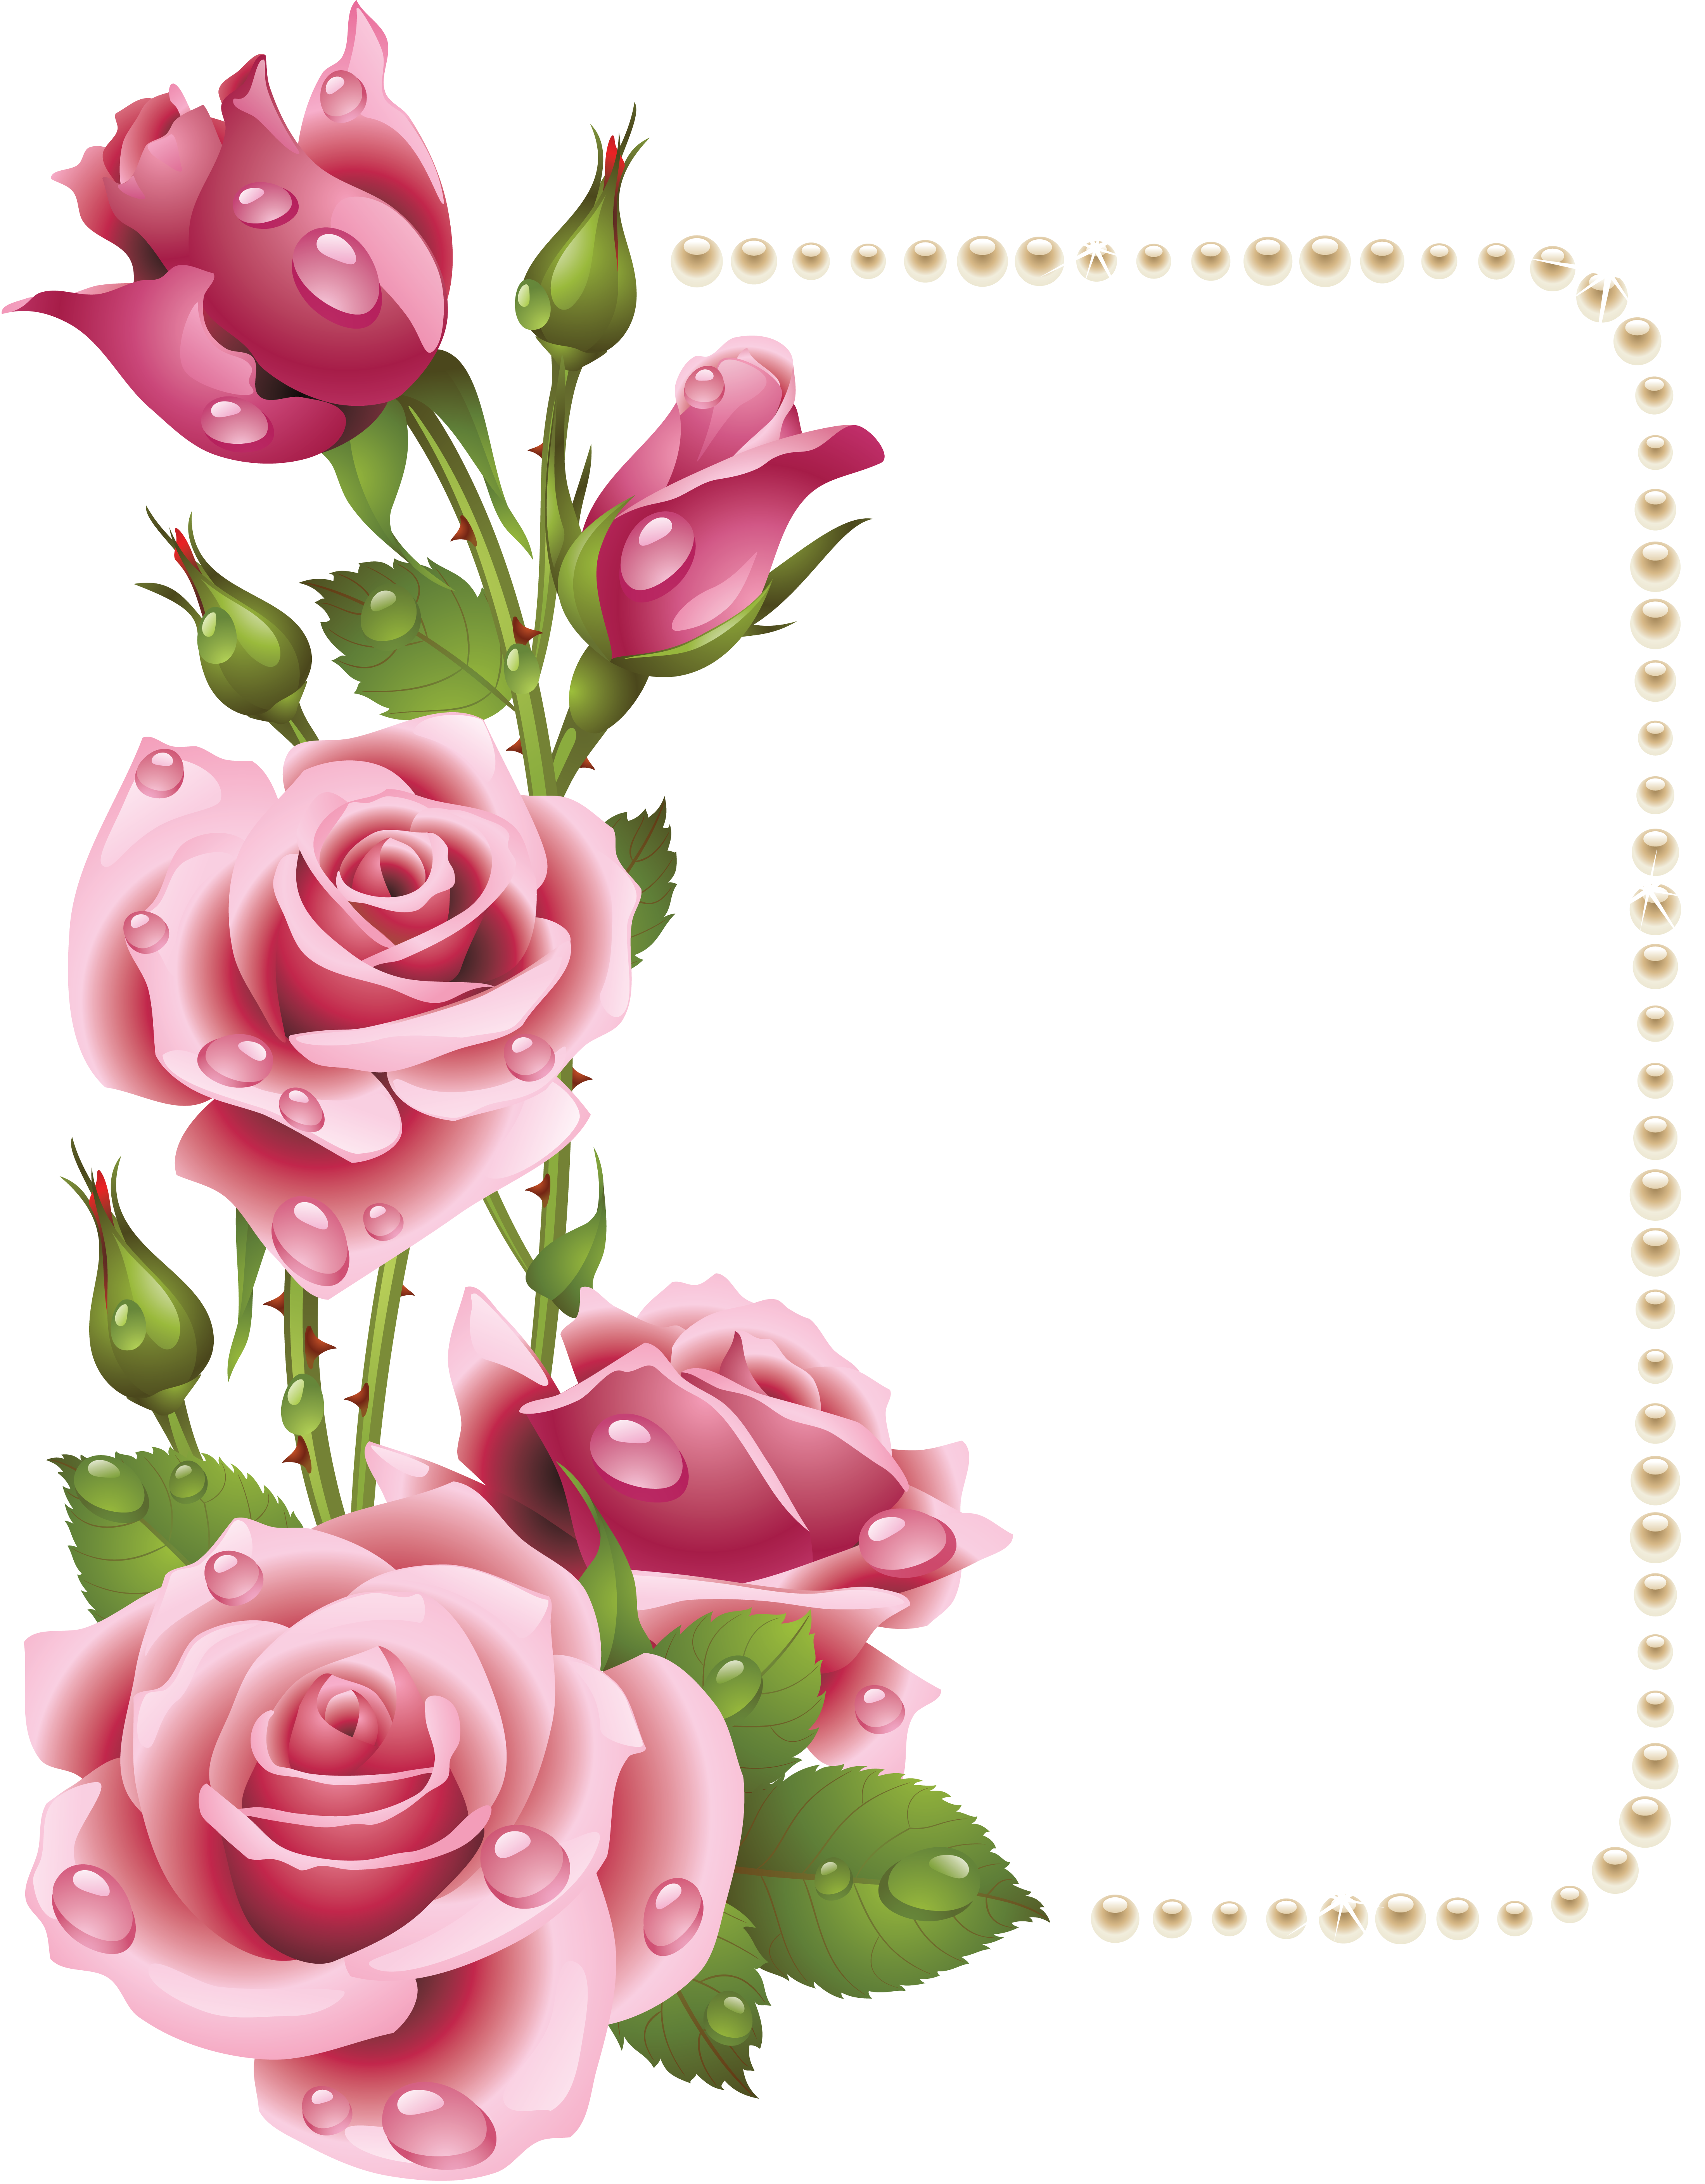 Flower border clipart roses clip royalty free Large Transparent Frame with Pink Roses and Pearls | Цветы ... clip royalty free